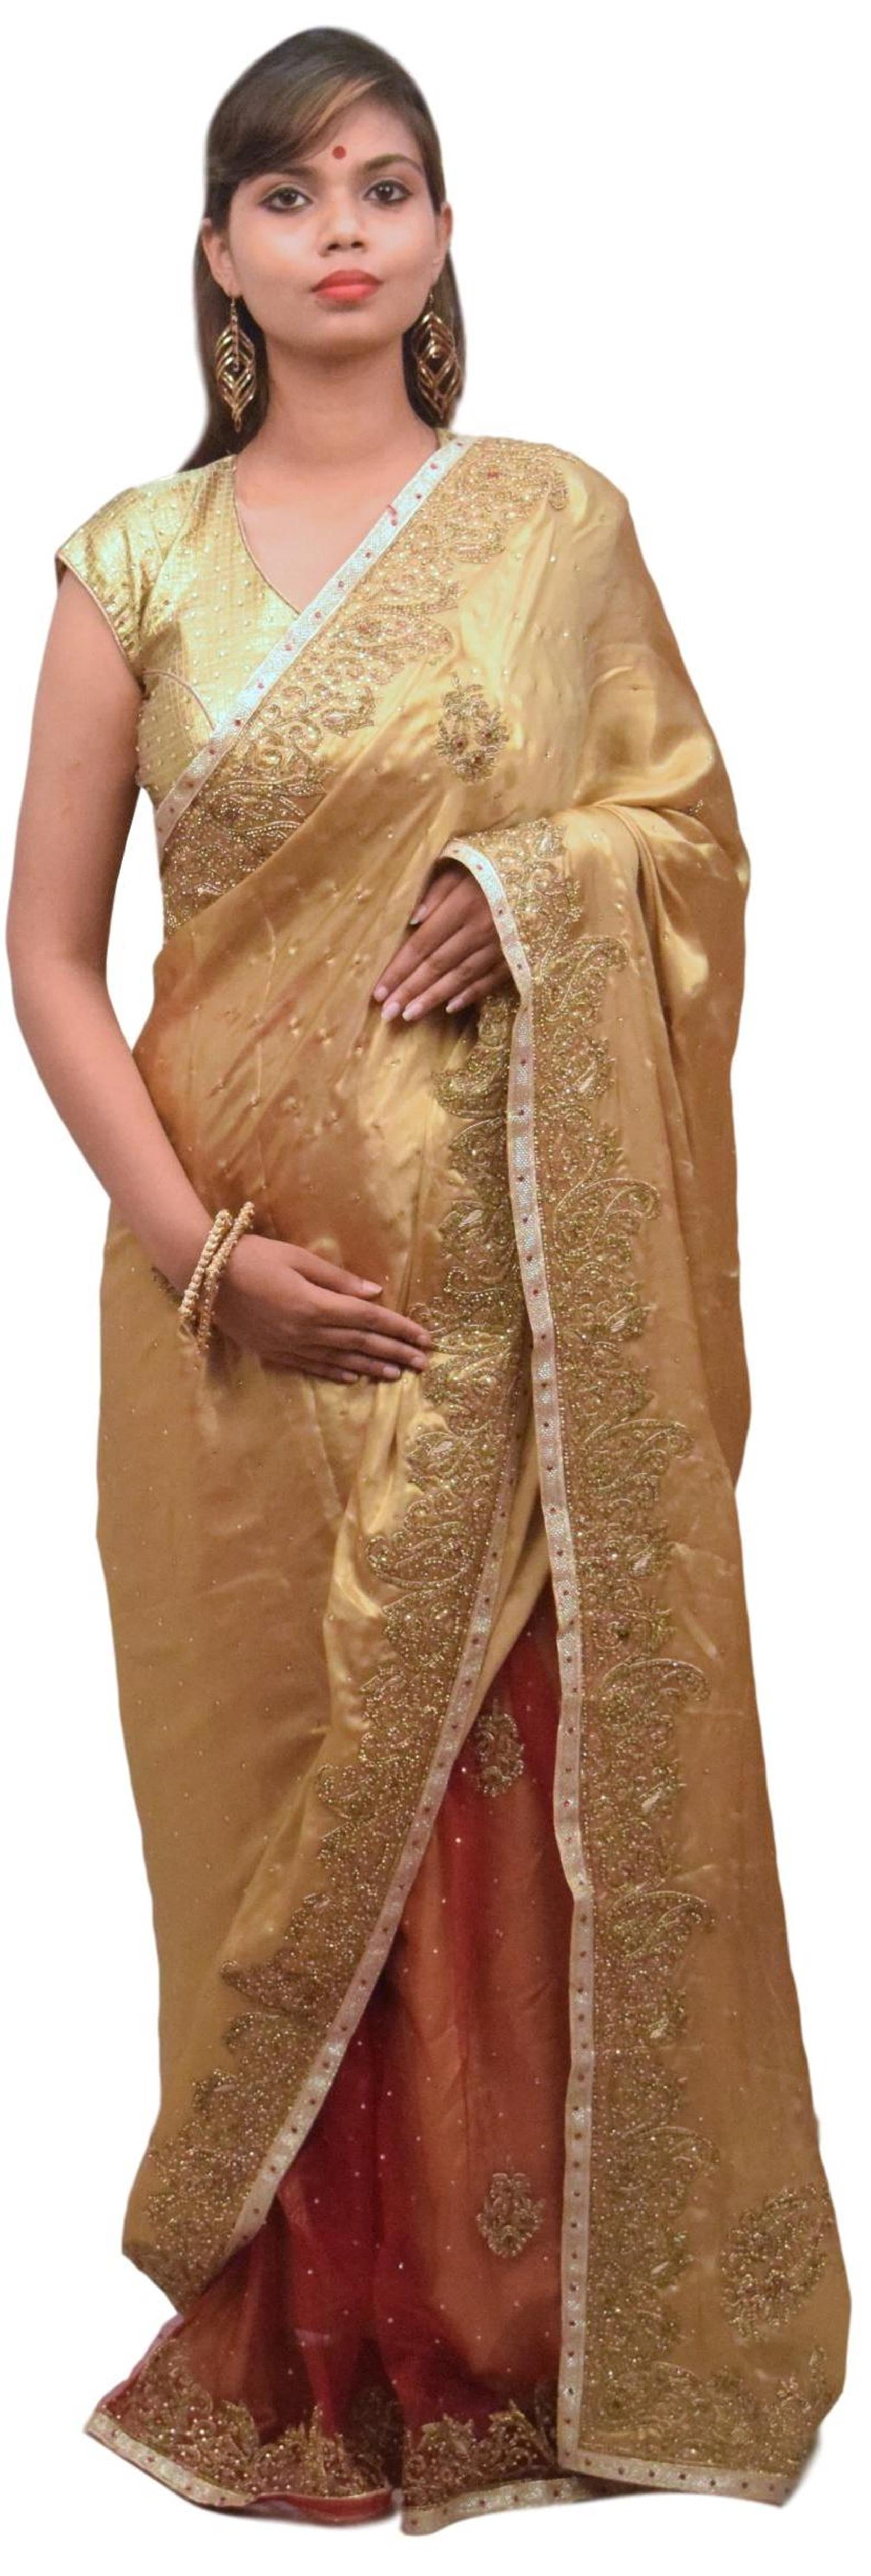 Golden & Red Designer Wedding Partywear Georgette & Net Hand Embroidery Stone Bullion Zari Work Kolkata Saree Sari E424